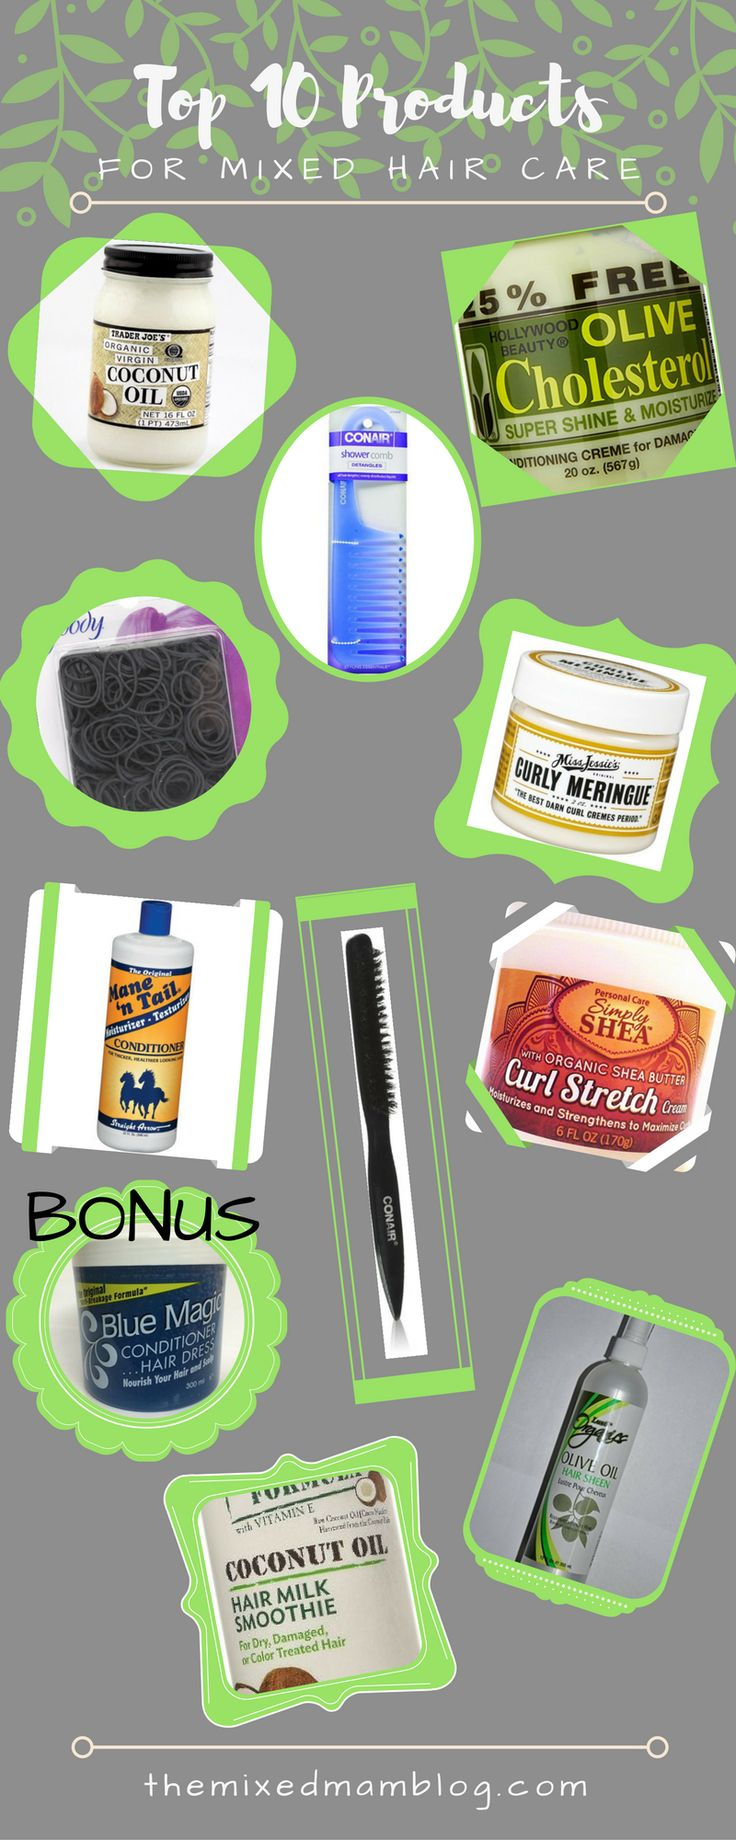 Top 10 INEXPENSIVE Products for Mixed/Multiracial/Biracial Hair Care. -Need ideas for CHEAP products you NEED to try for mixed hair needs? Then give these a try. Check them out on my blog: themixedmamablog.com